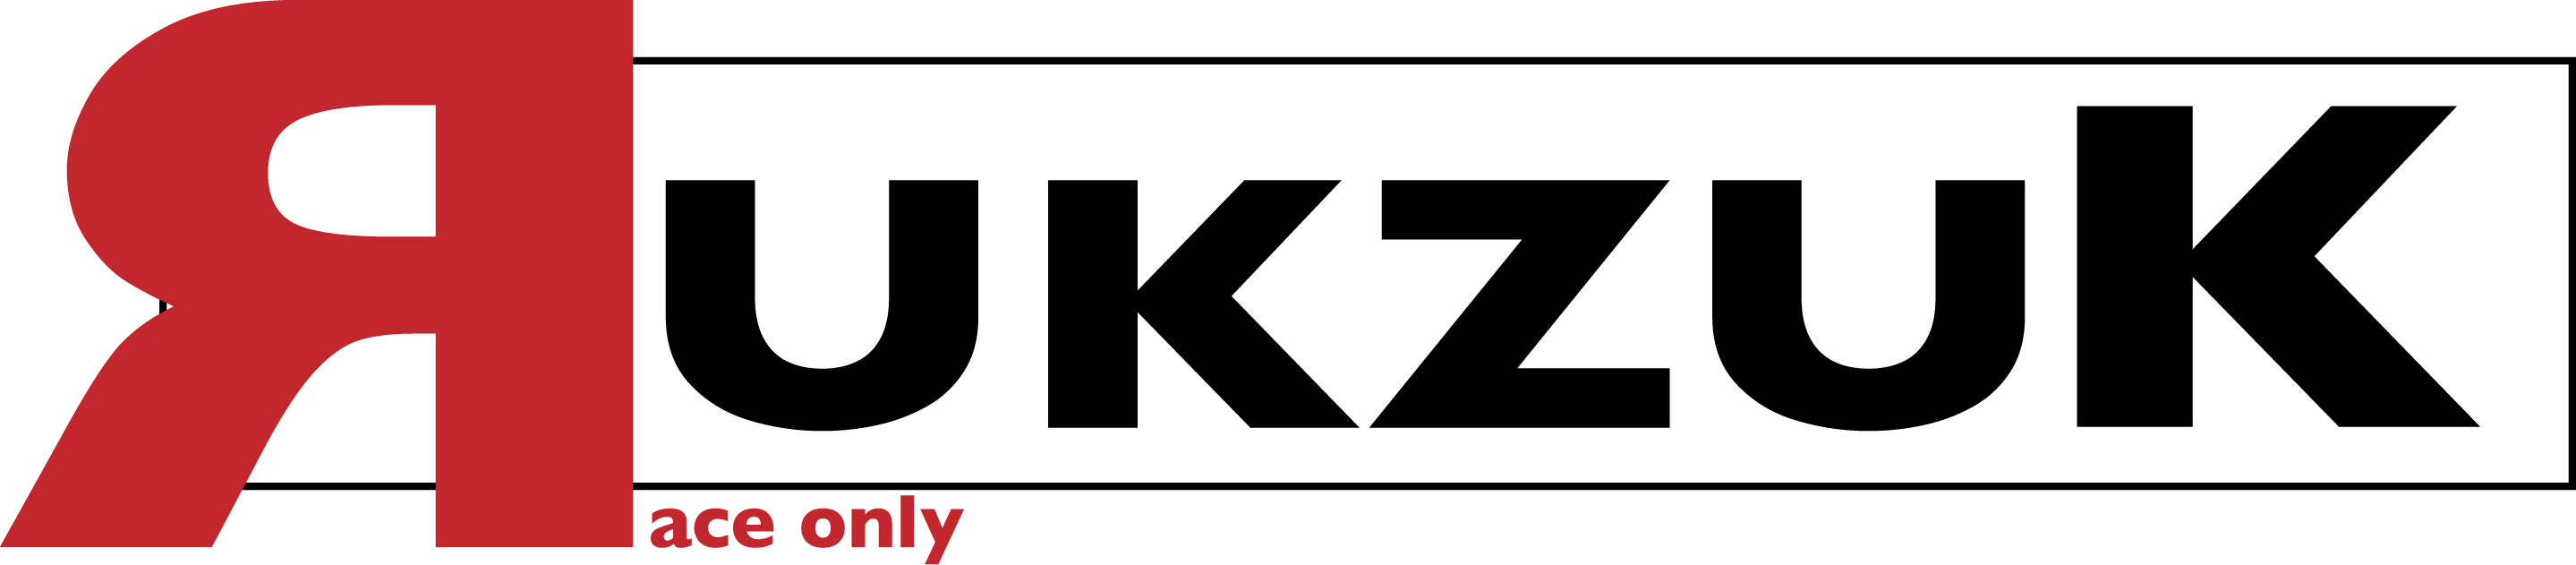 files/Droplimits/images/Logos/logo-rukzuk.png